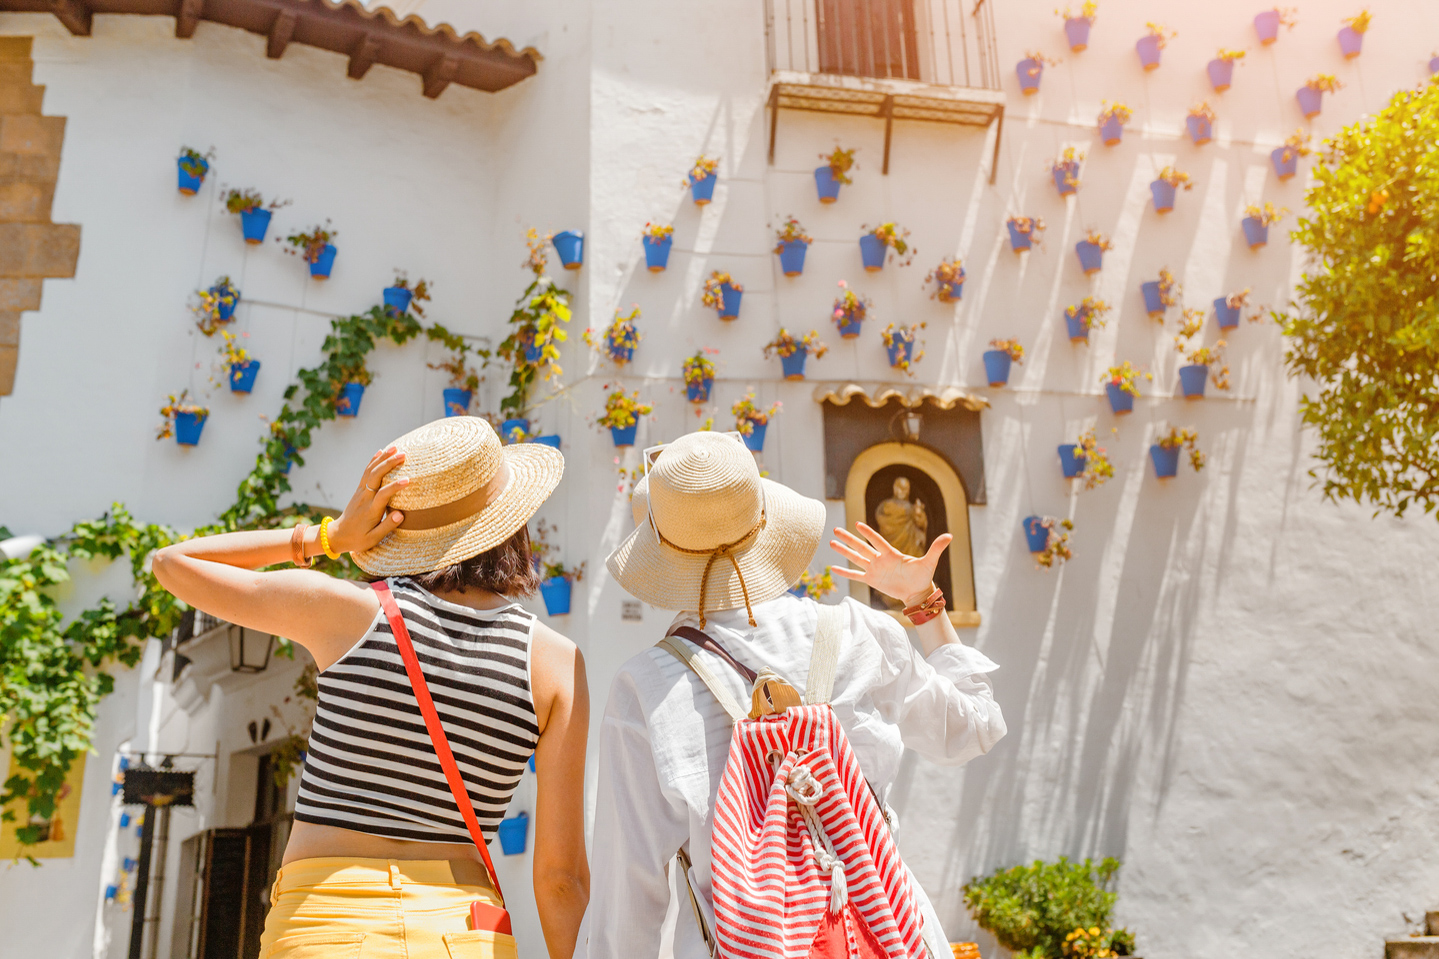 Discover The Spectacular White Towns Of Andalusia Shutterstock 1198024888